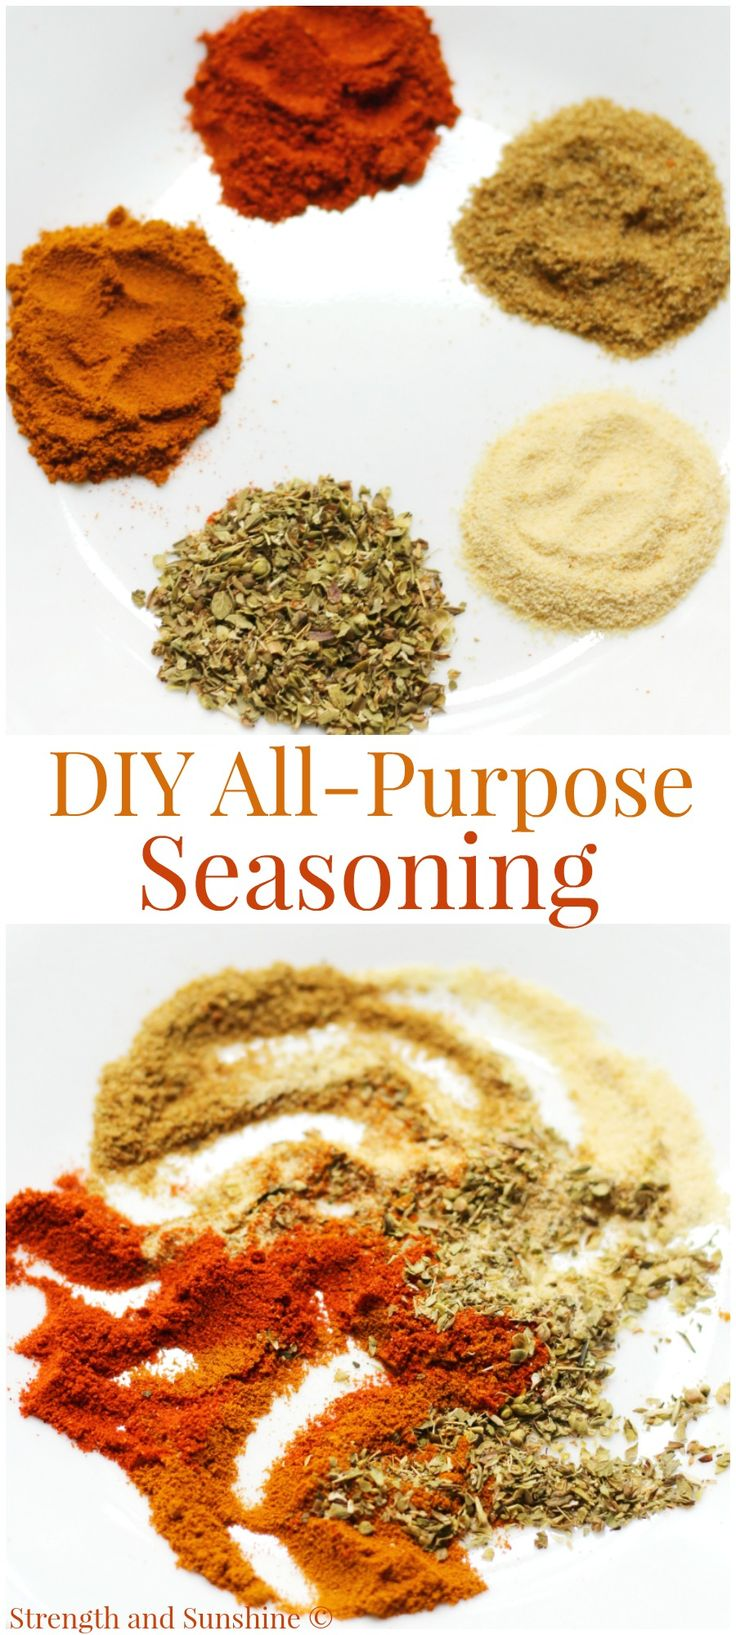 DIY All-Purpose Seasoning + Pantry Supplies Storage Hacks | Strength and Sunshine @RebeccaGF666 A perfect DIY All-Purpose Seasoning recipe, gluten-free, salt and sugar-free, that will spice up any dish! Plus some trendy hacks for traveling, transporting, storing and organizing all you small pantry cooking and baking essentials! #storagewithstyle #Pmedia @creativeoption  #ad